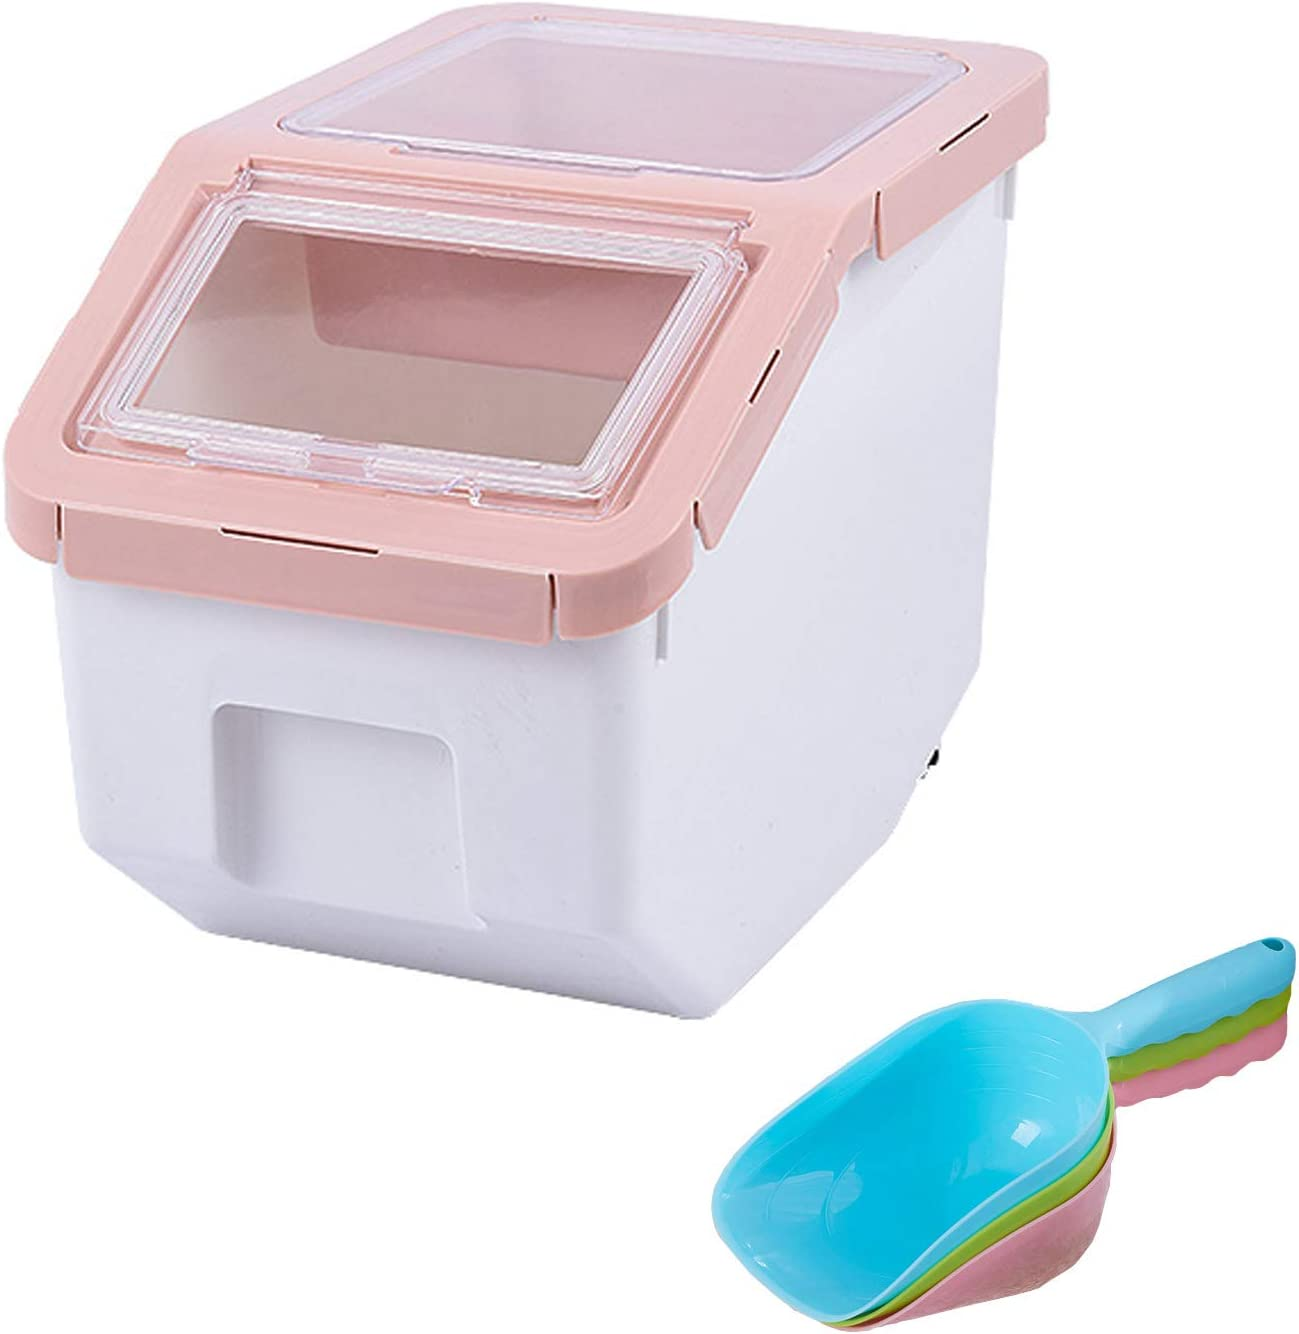 PENCKRice Container Storage Pet Dog Cat Food Bin Airtight Plastic Food Dispenser Holder Cereal Grain Organizer Box with Locking Lid, Measuring Cup, Scoop & Wheels,5-6kg Capacity, Pink, Small